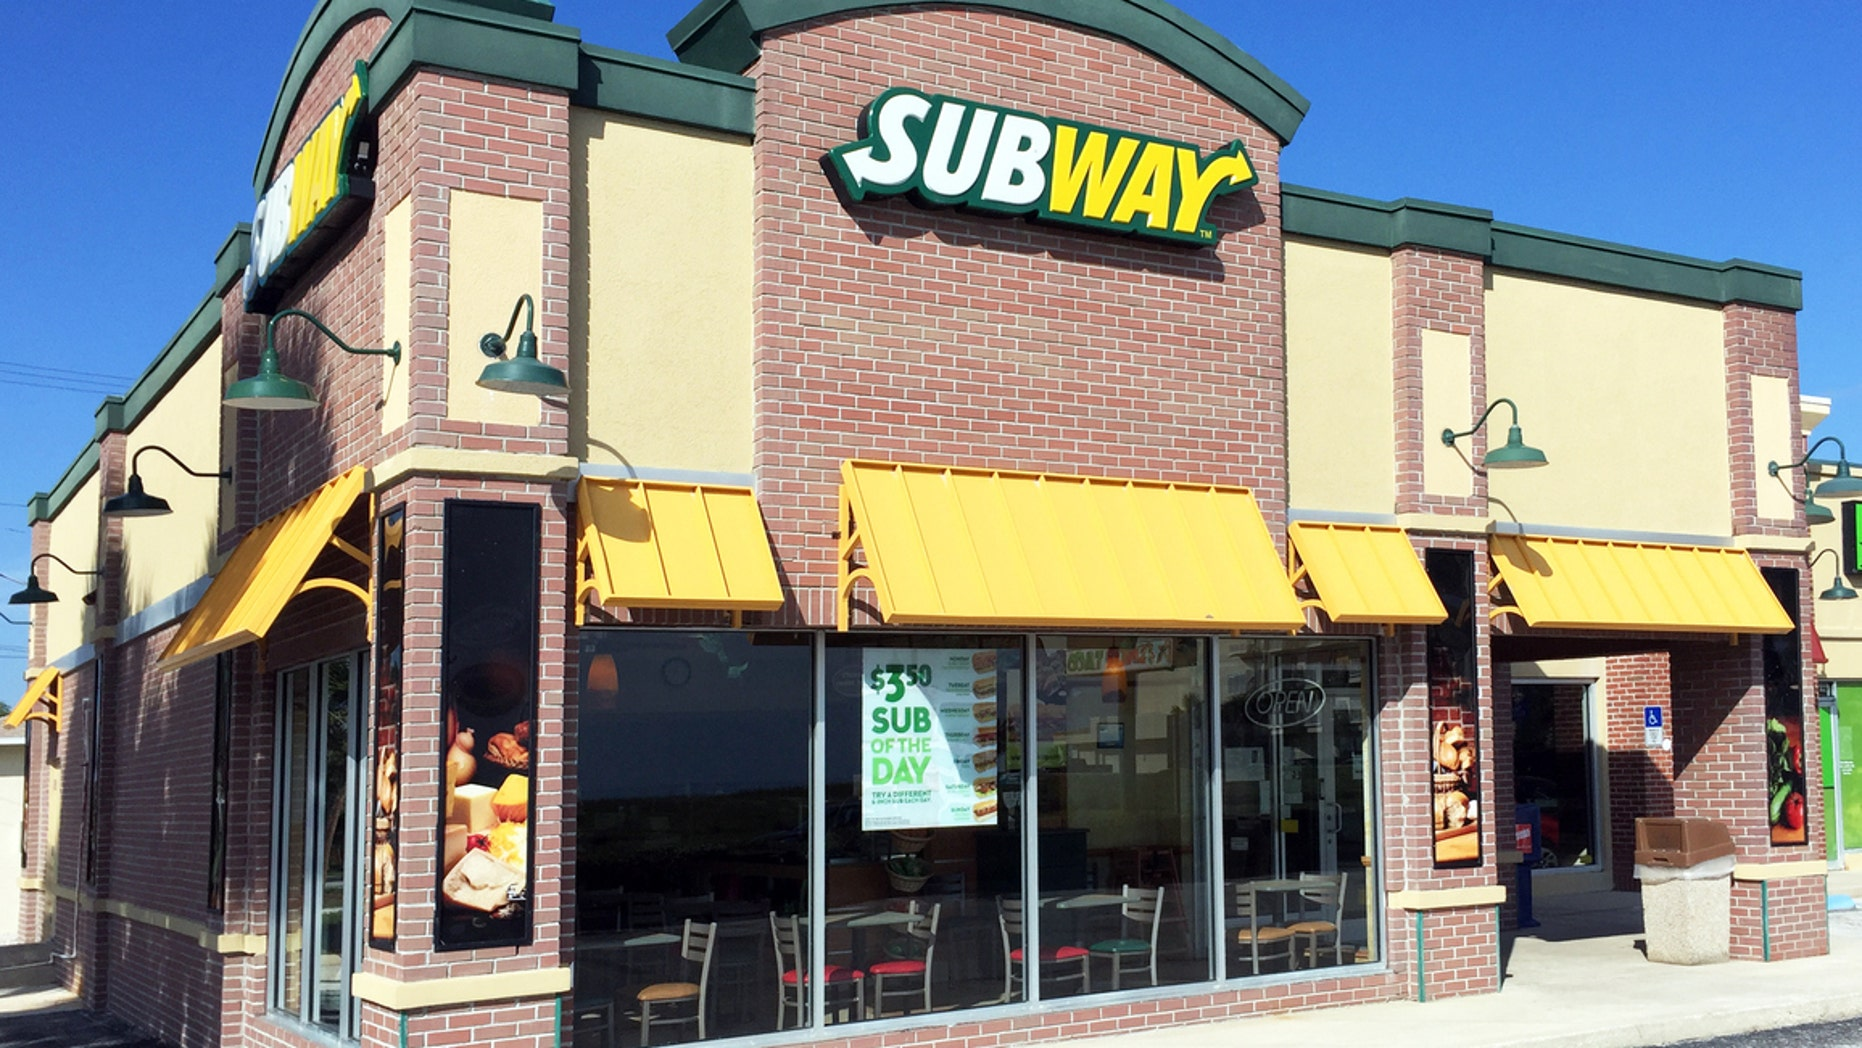 Tina Richardson claims the owner of a Concord, N.C., Subway shop assaulted her after she complained about an order.